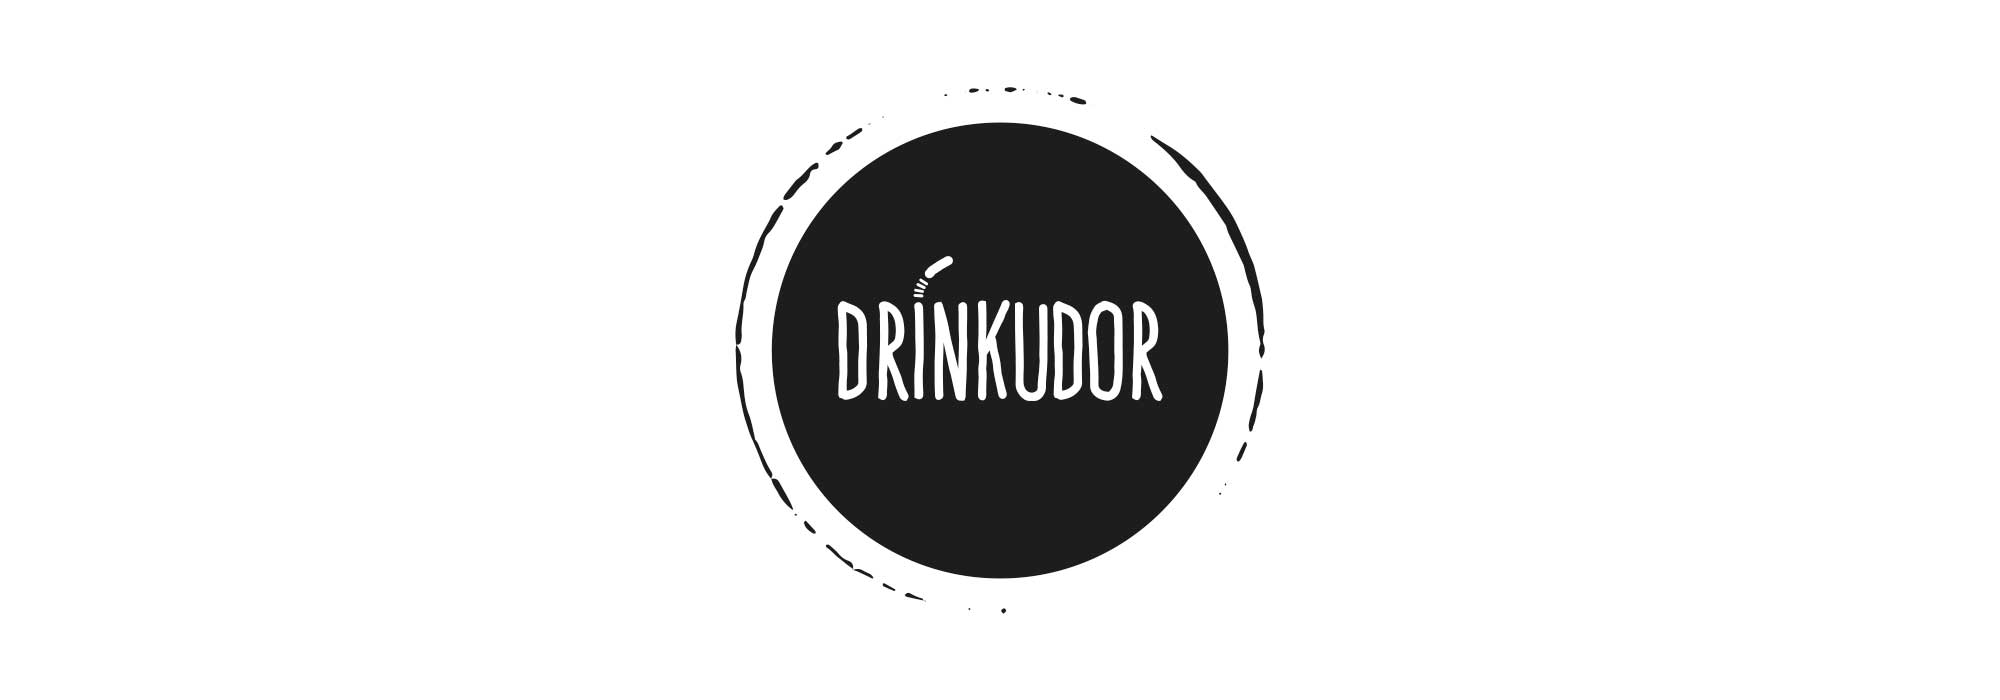 blockundstift-drinkudor-logo-logodesign-augsburg